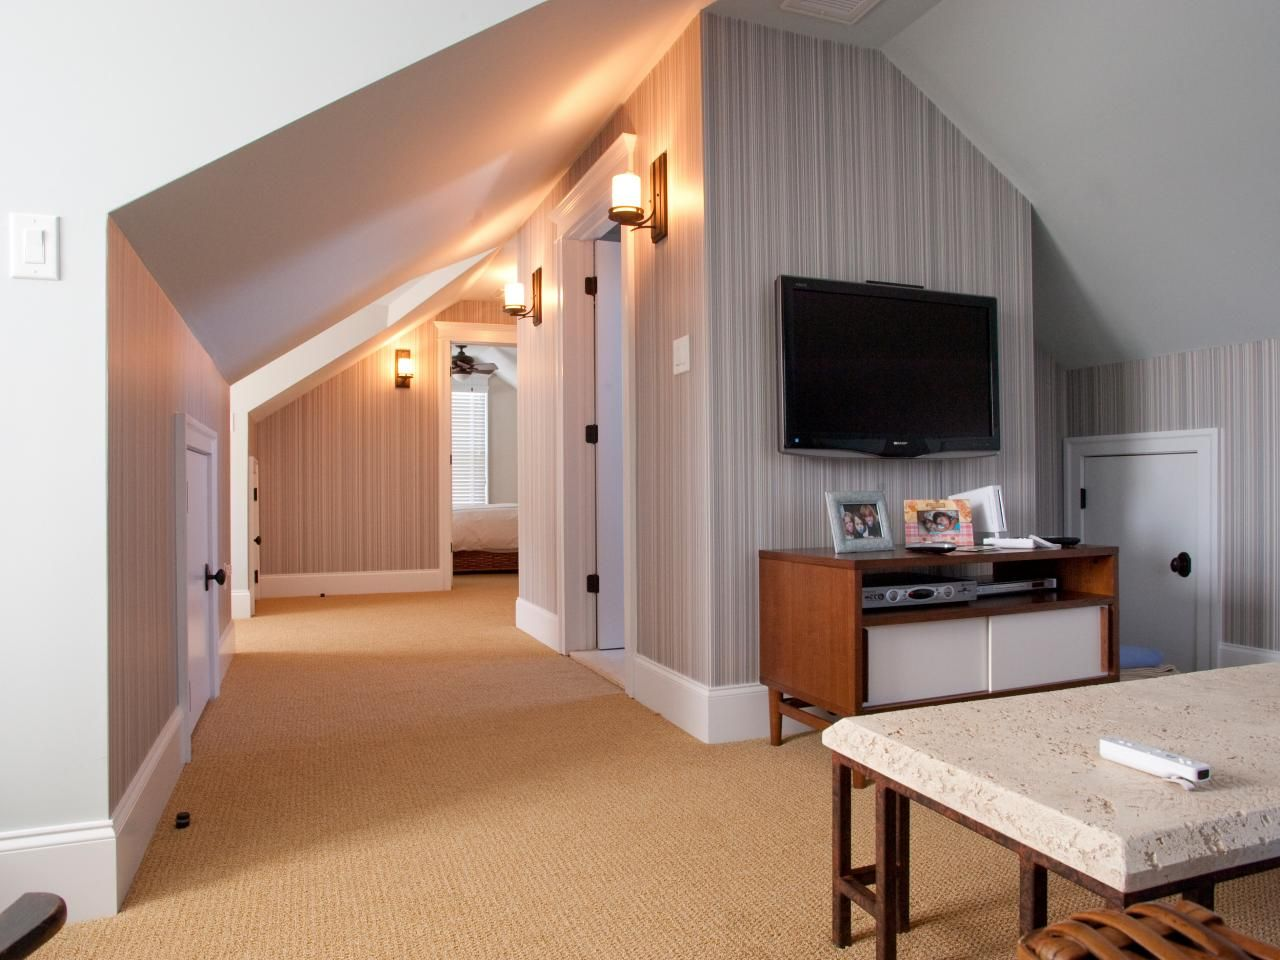 A Media Room Is Set Up In This Attic Space Complete With A Flat Screen Television Modern Media Cabinet And Te Attic Master Bedroom Attic Remodel Attic Design